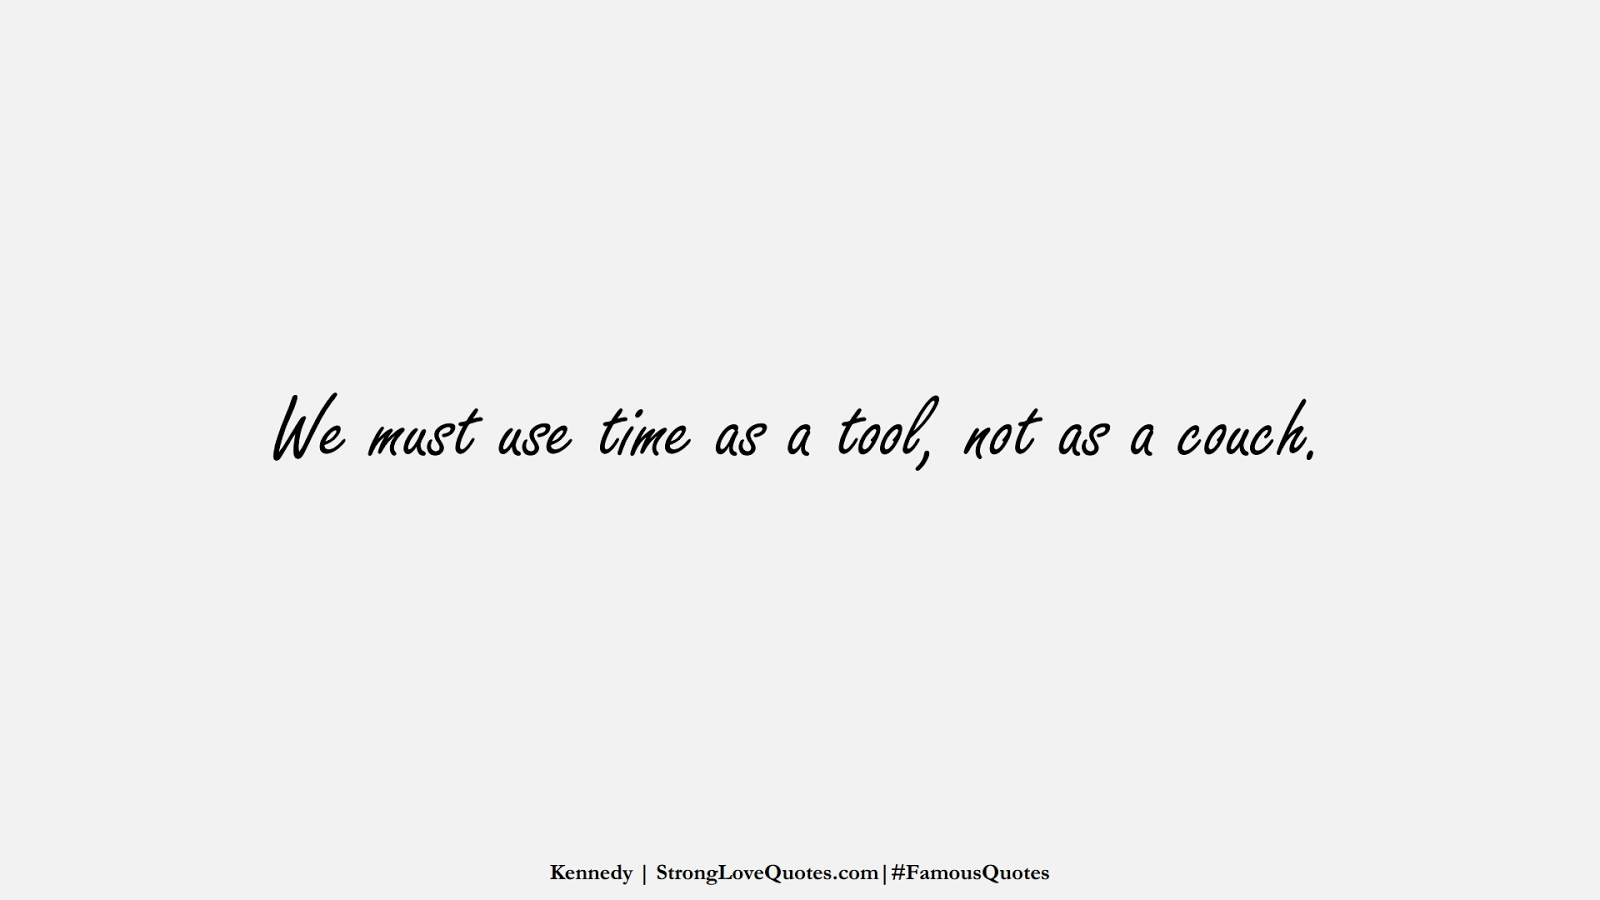 We must use time as a tool, not as a couch. (Kennedy);  #FamousQuotes